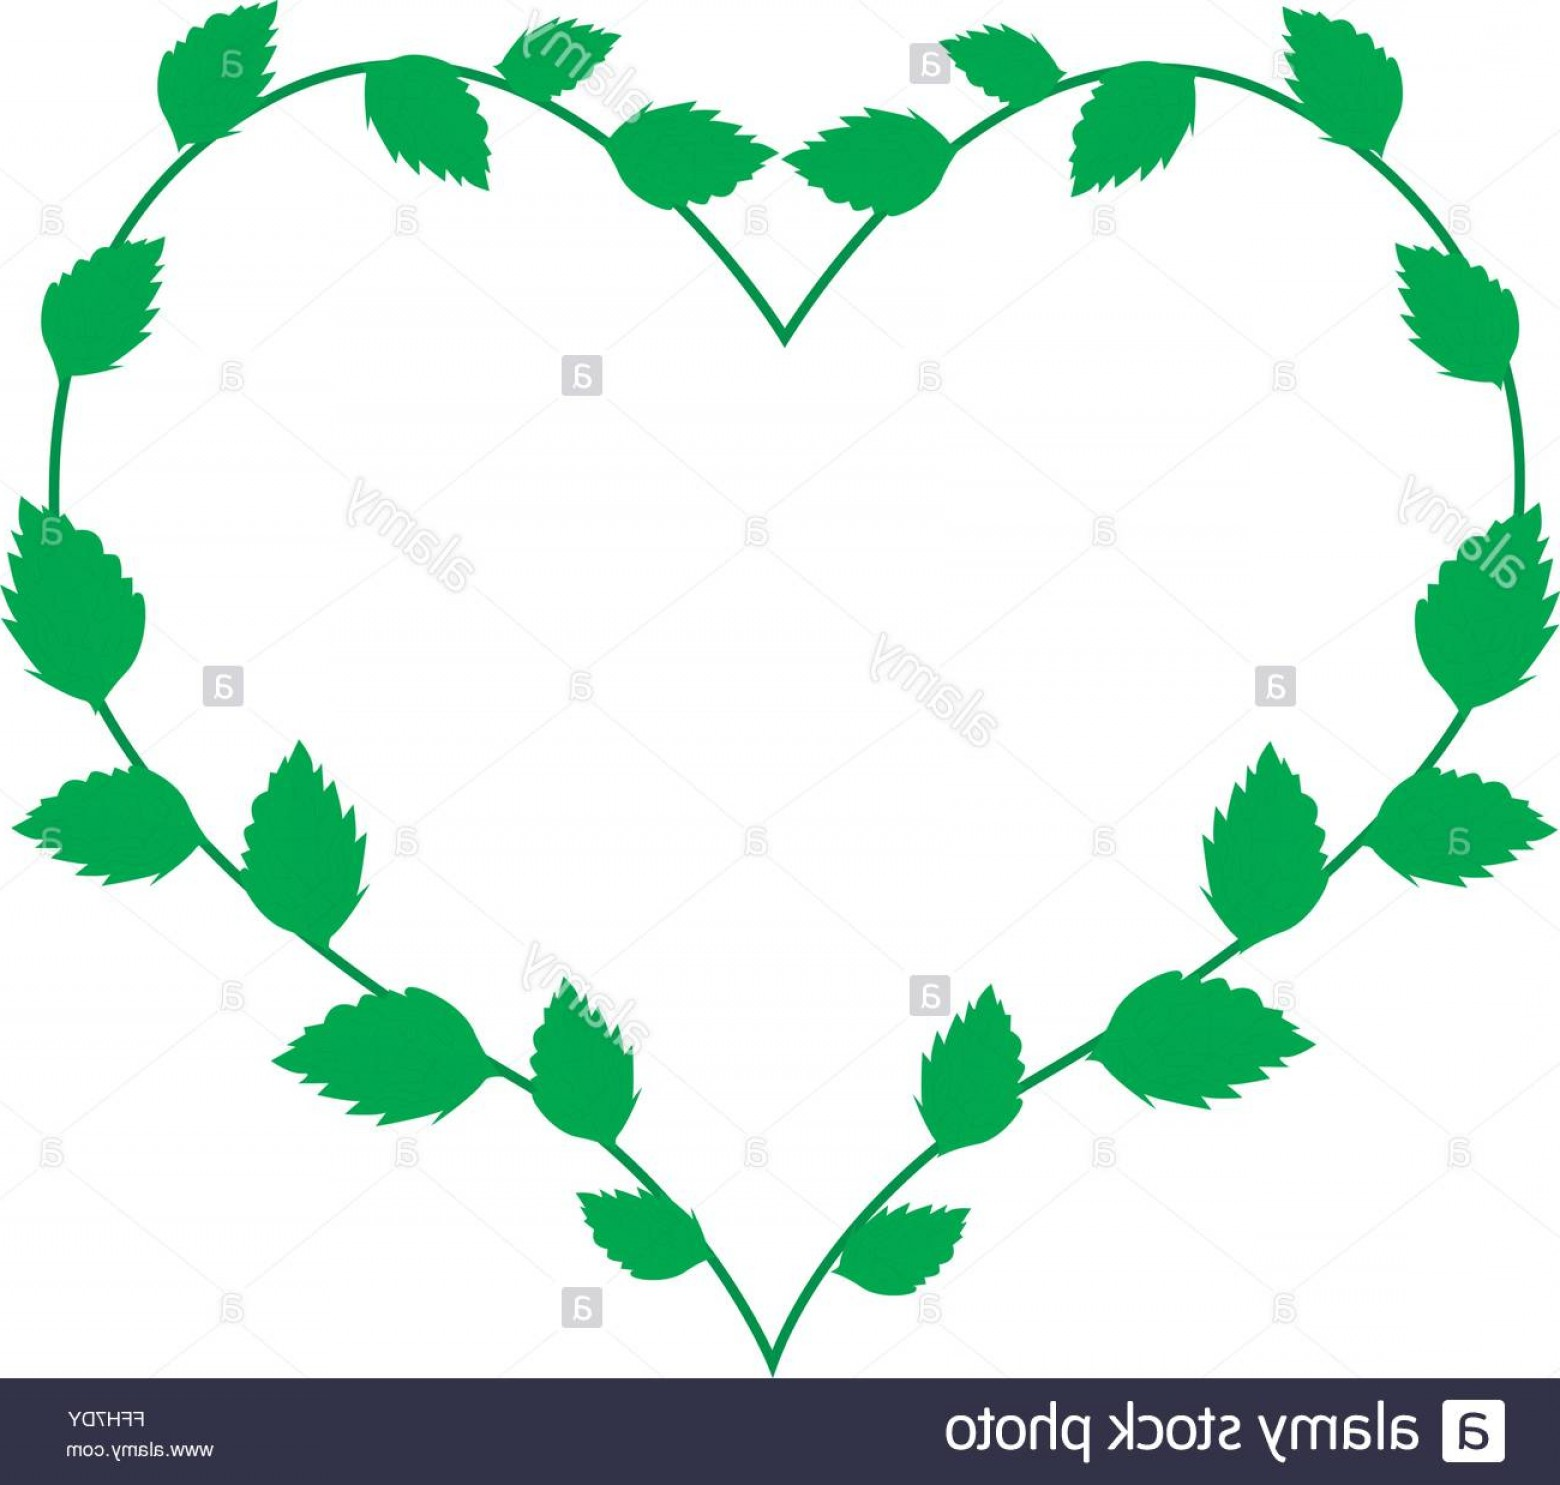 Green Vine Vector: Stock Photo Love Concept Illustration Of Heart Shape Wreath Made Of Green Vine